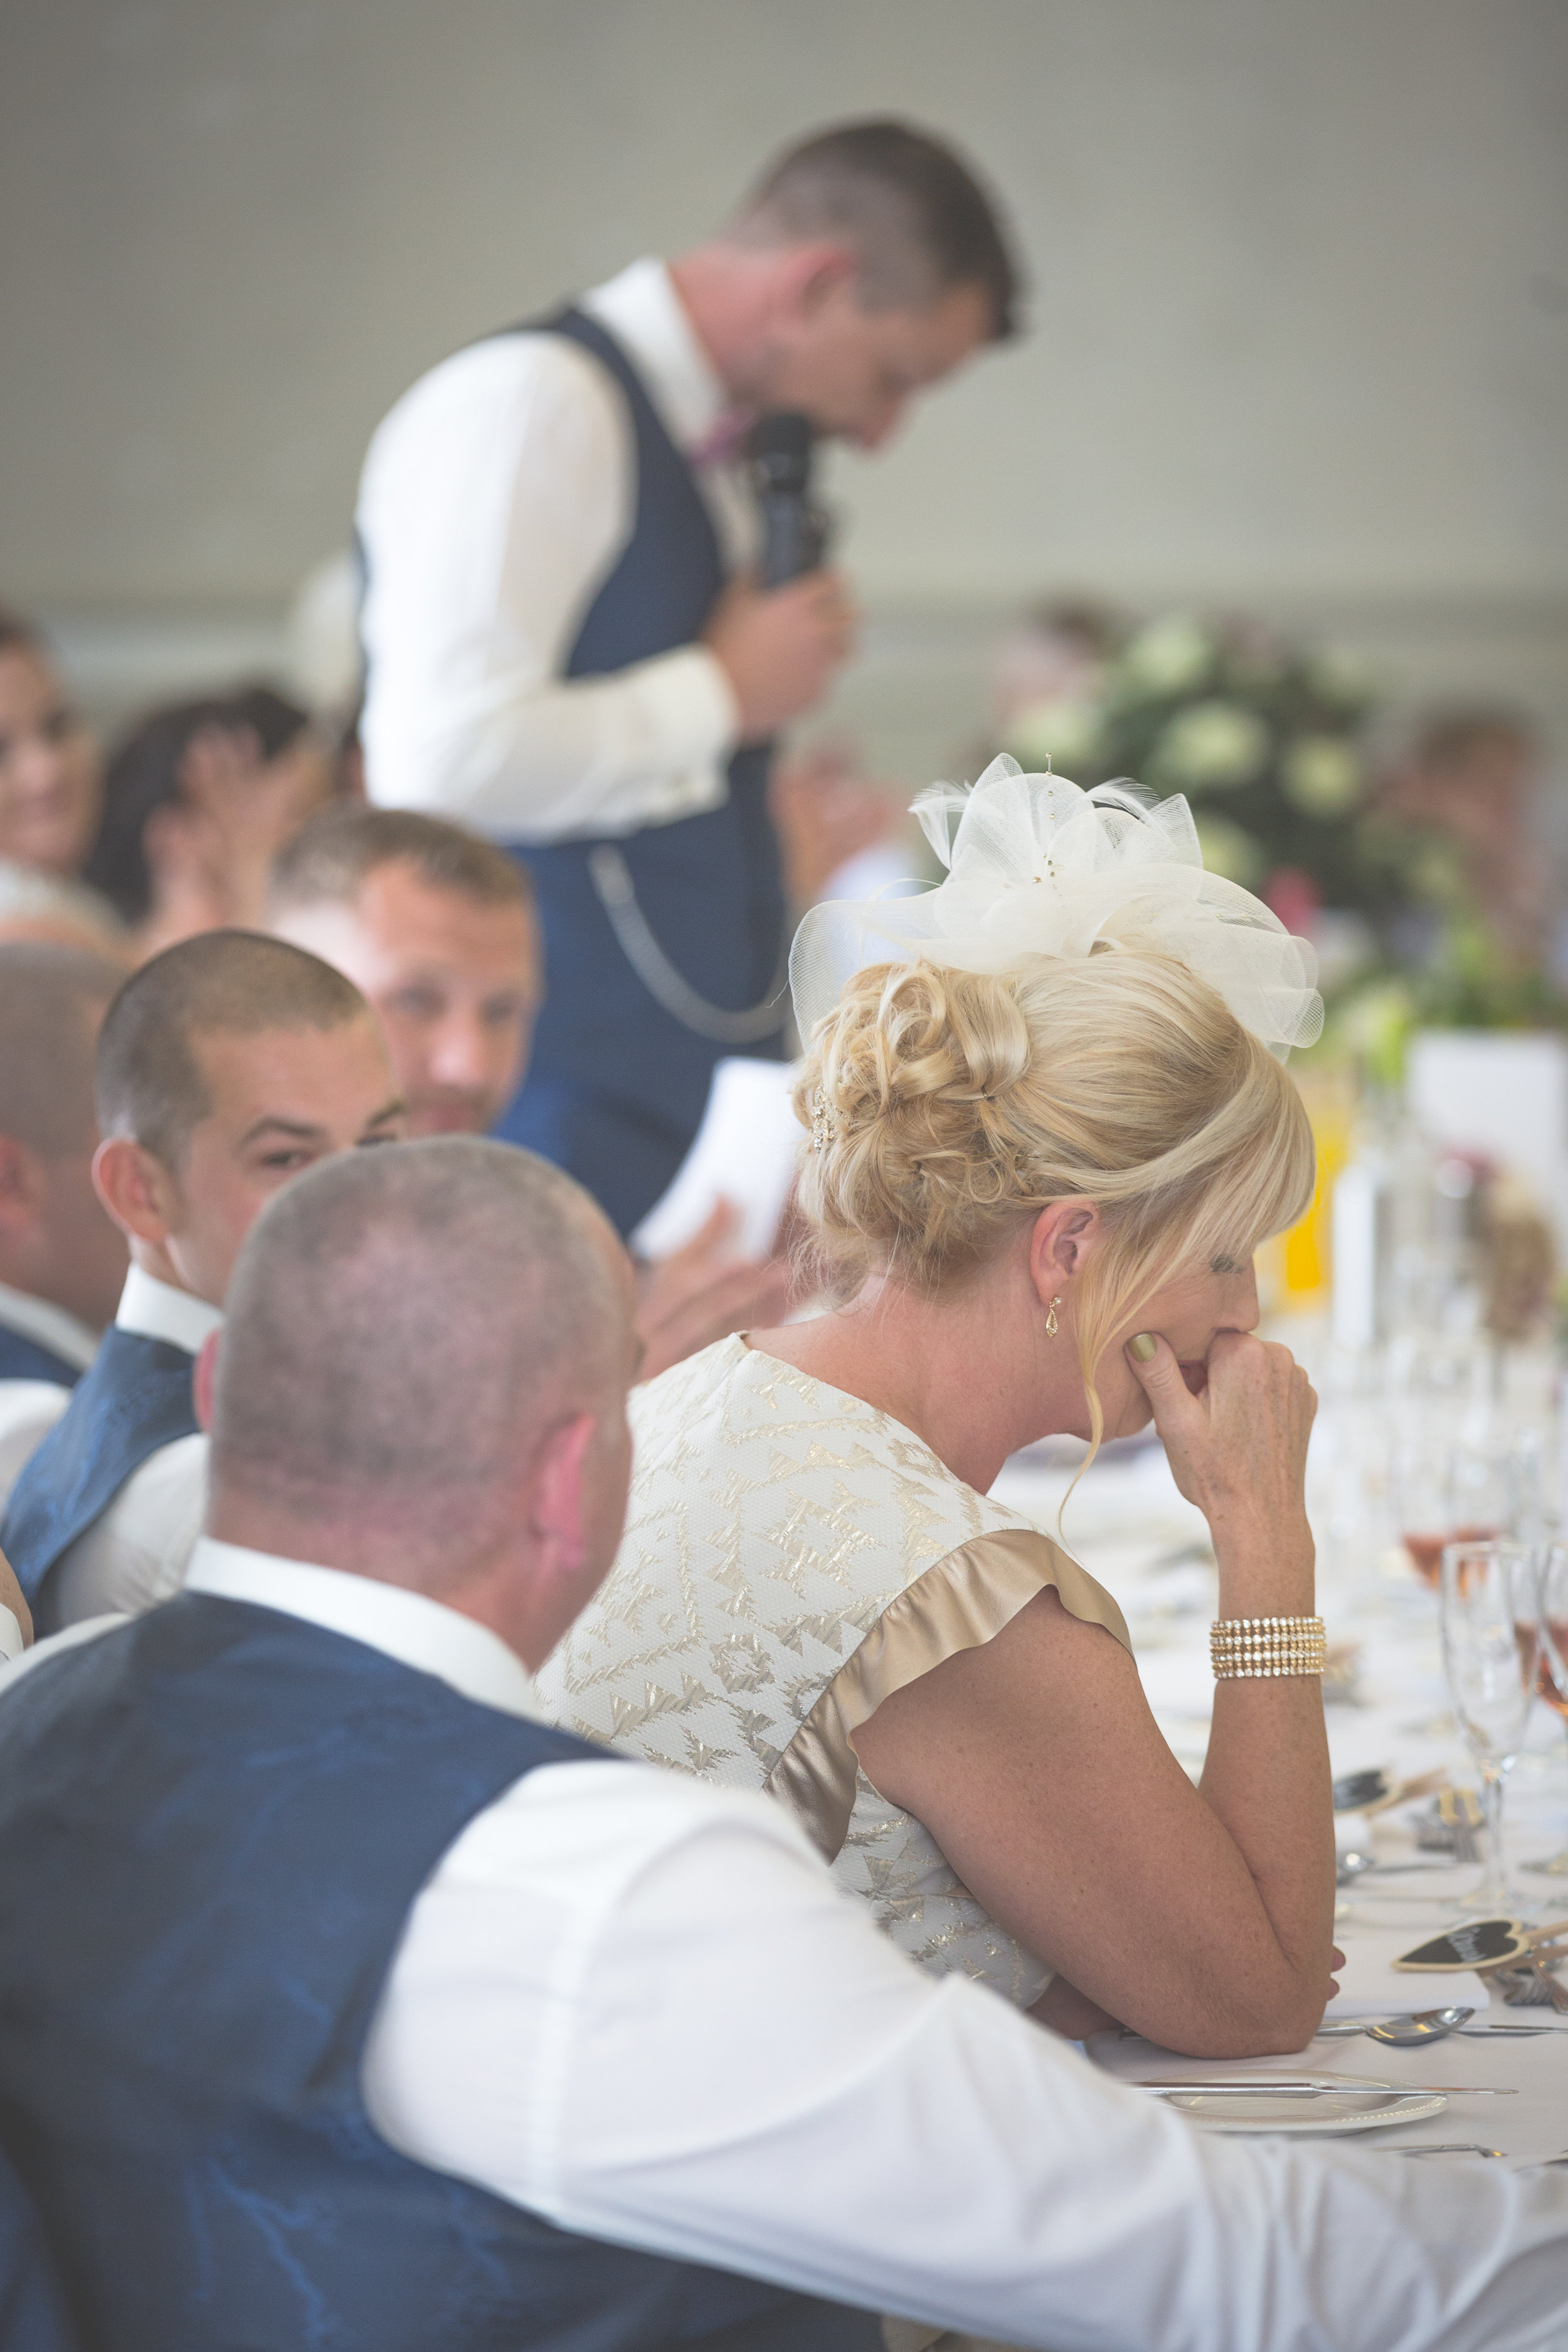 Antoinette & Stephen - Speeches | Brian McEwan Photography | Wedding Photographer Northern Ireland 64.jpg